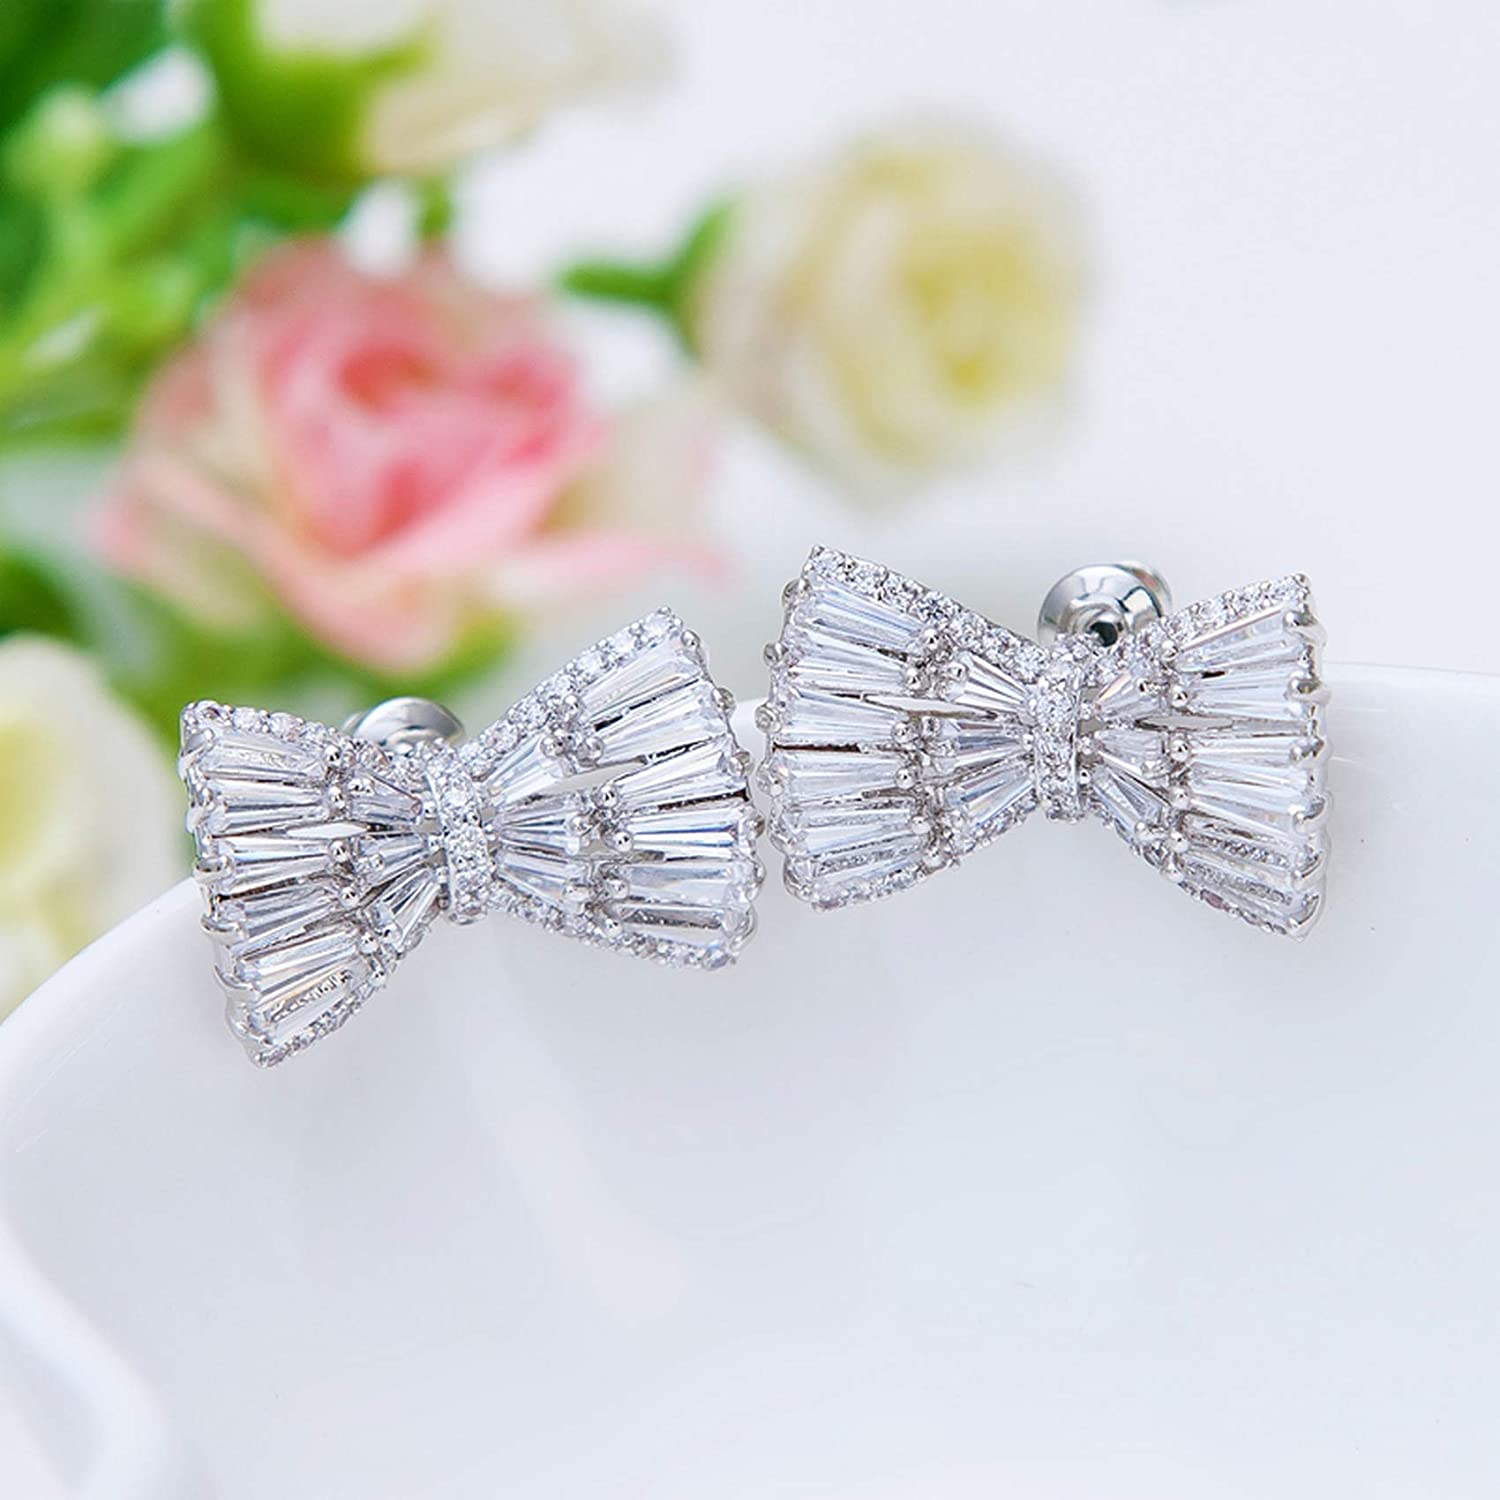 Sterling Silver Jewelry By CS-DB Small Size Candy Cut Pave Clear CZ Bow Stud Earrings